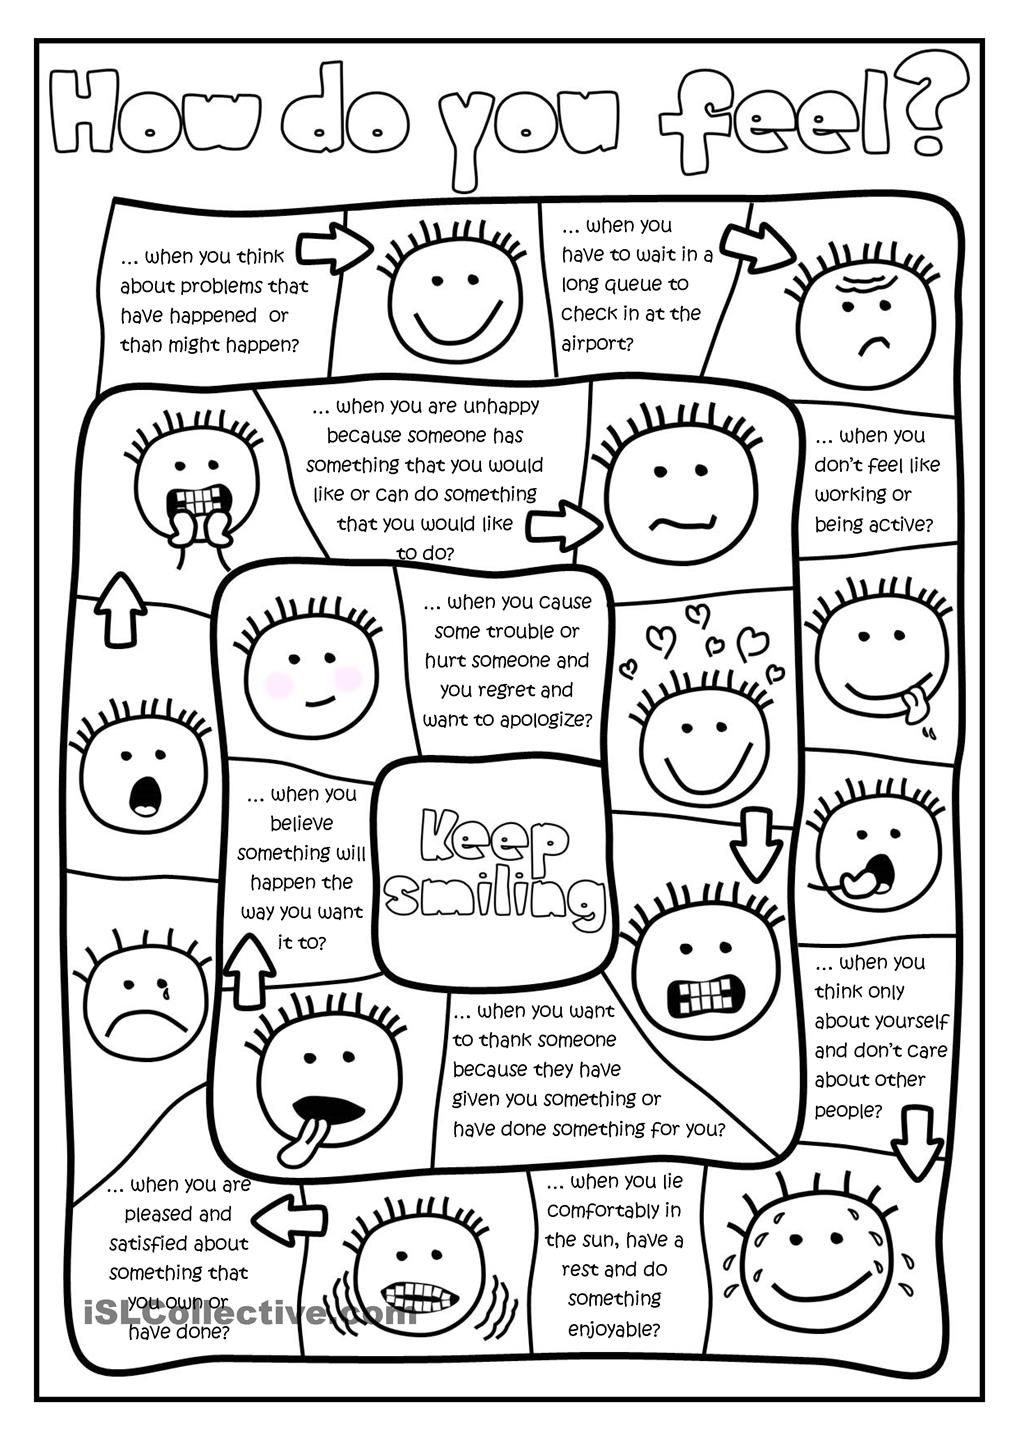 How do you feel? - board game worksheet - Free ESL printable ...